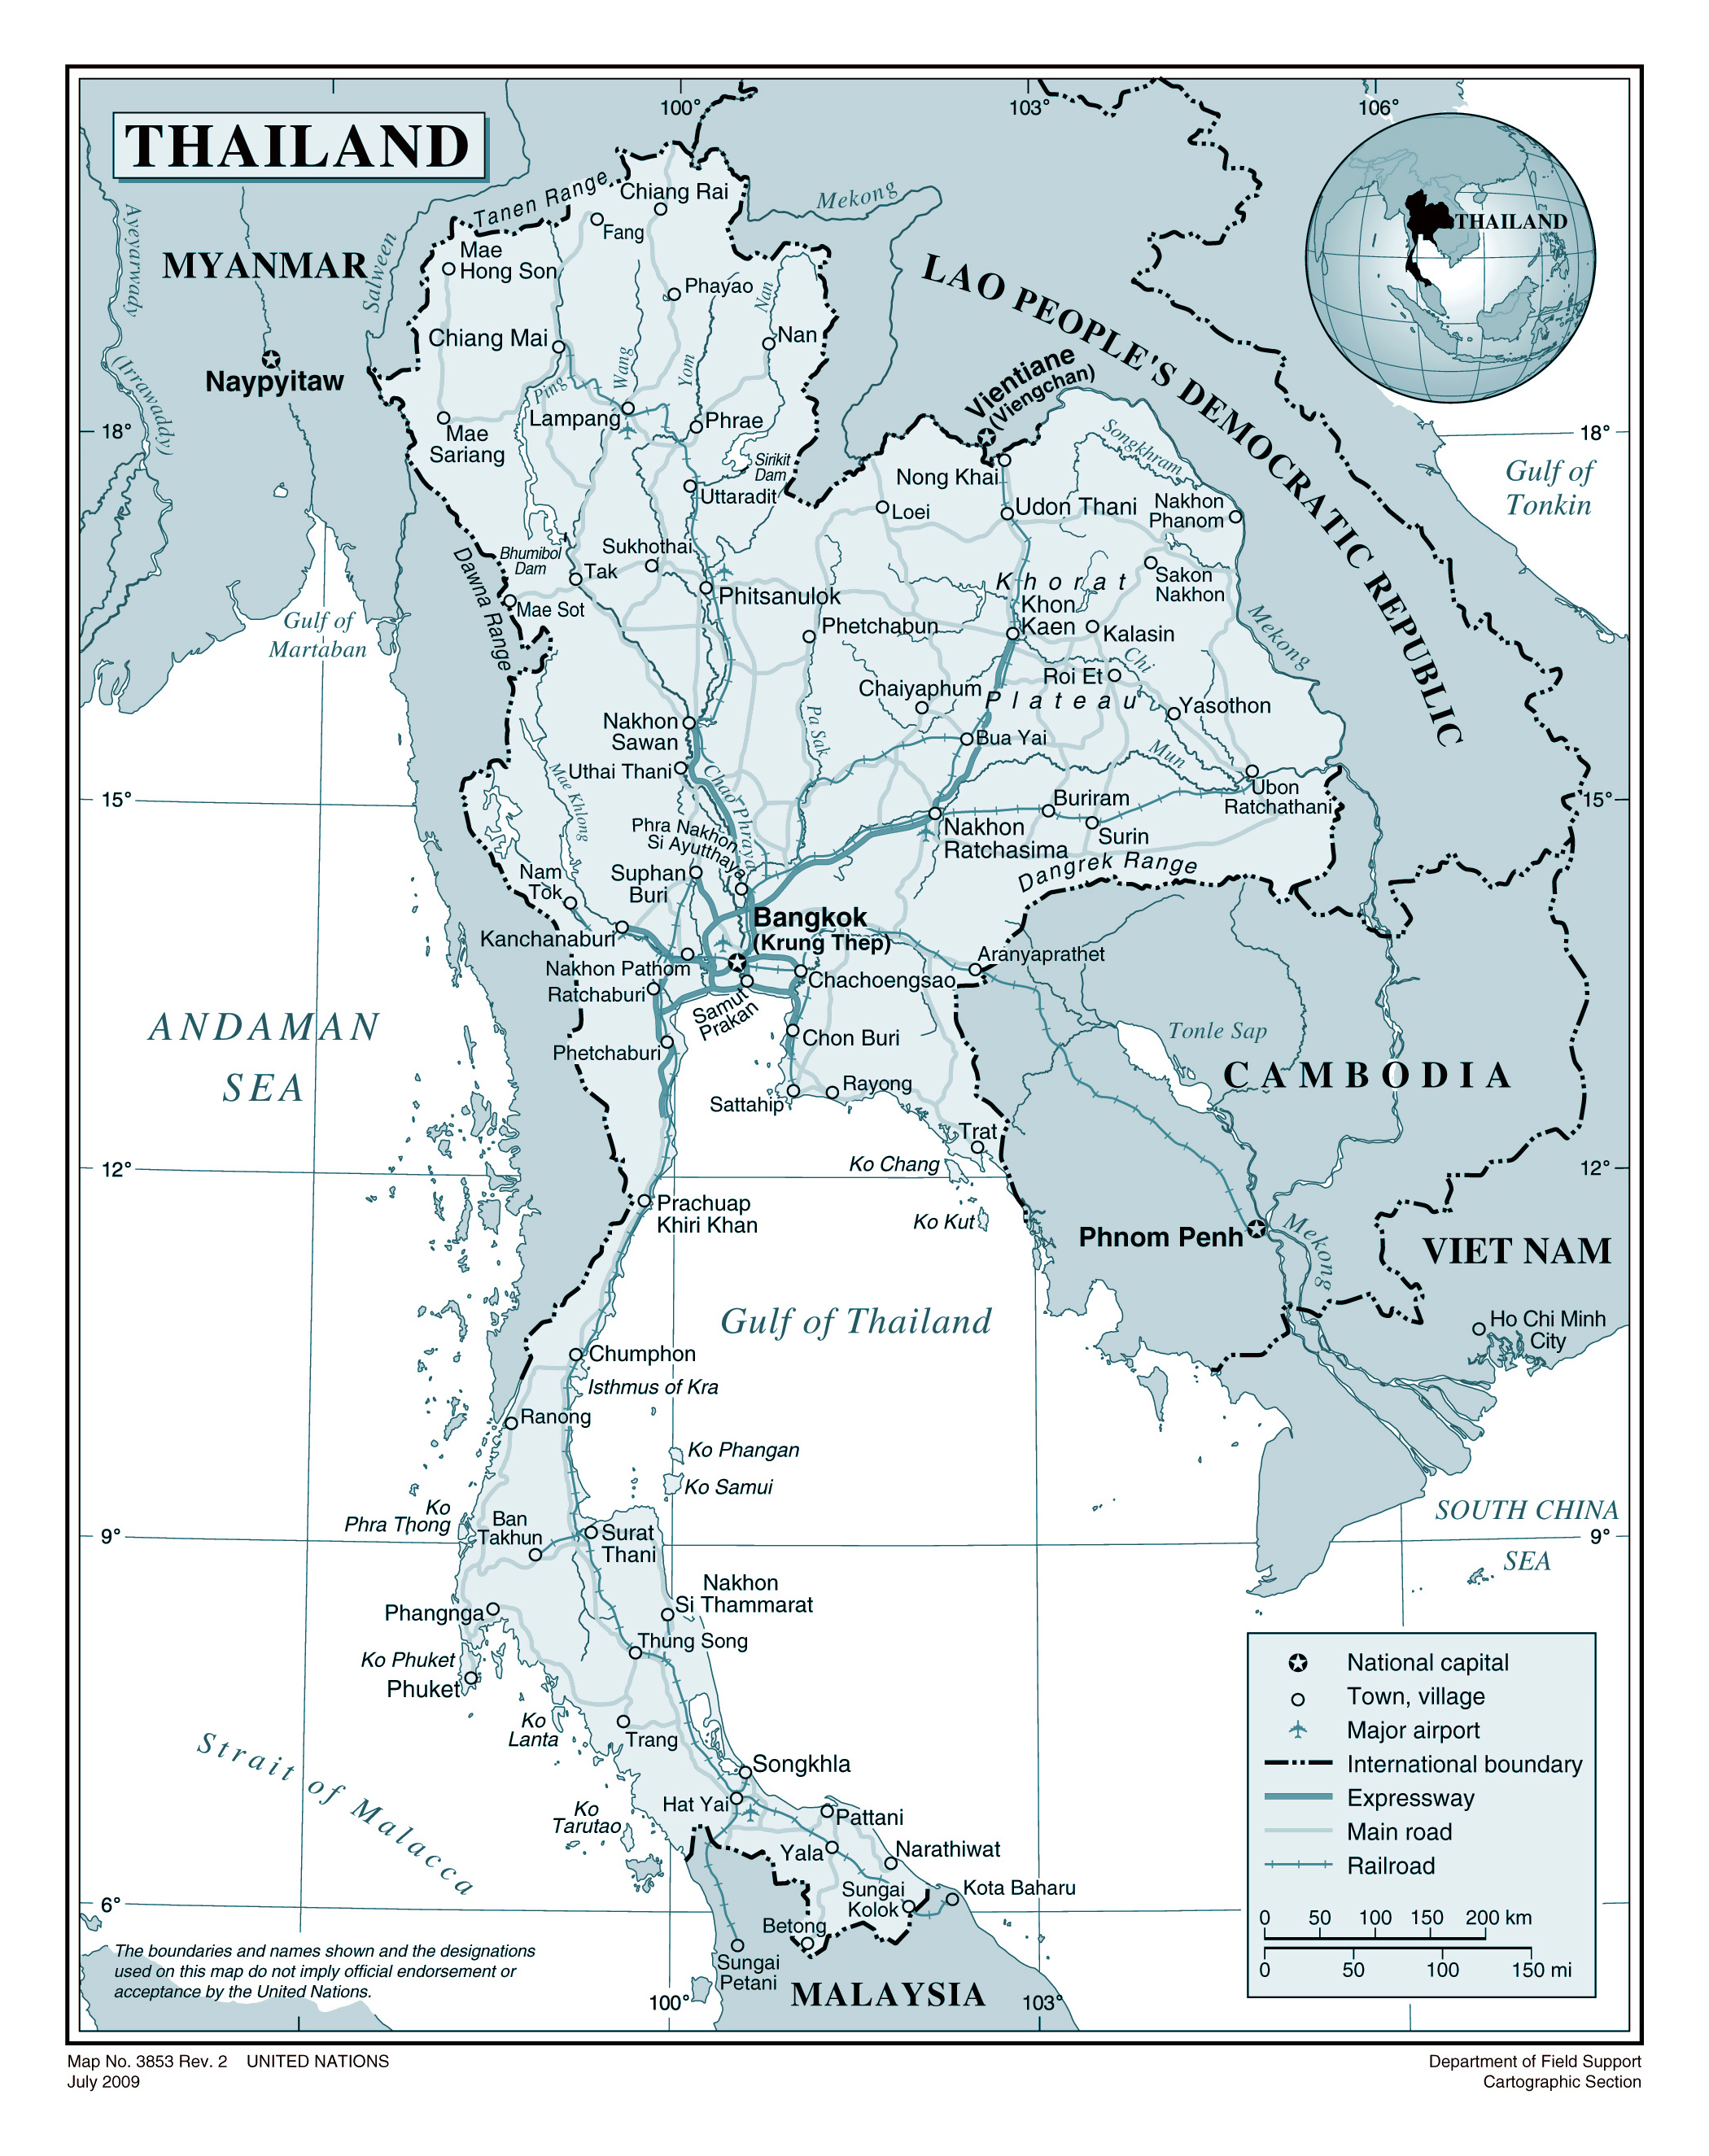 Large Detailed Political Map Of Thailand With Roads Railroads - Map of thailand cities